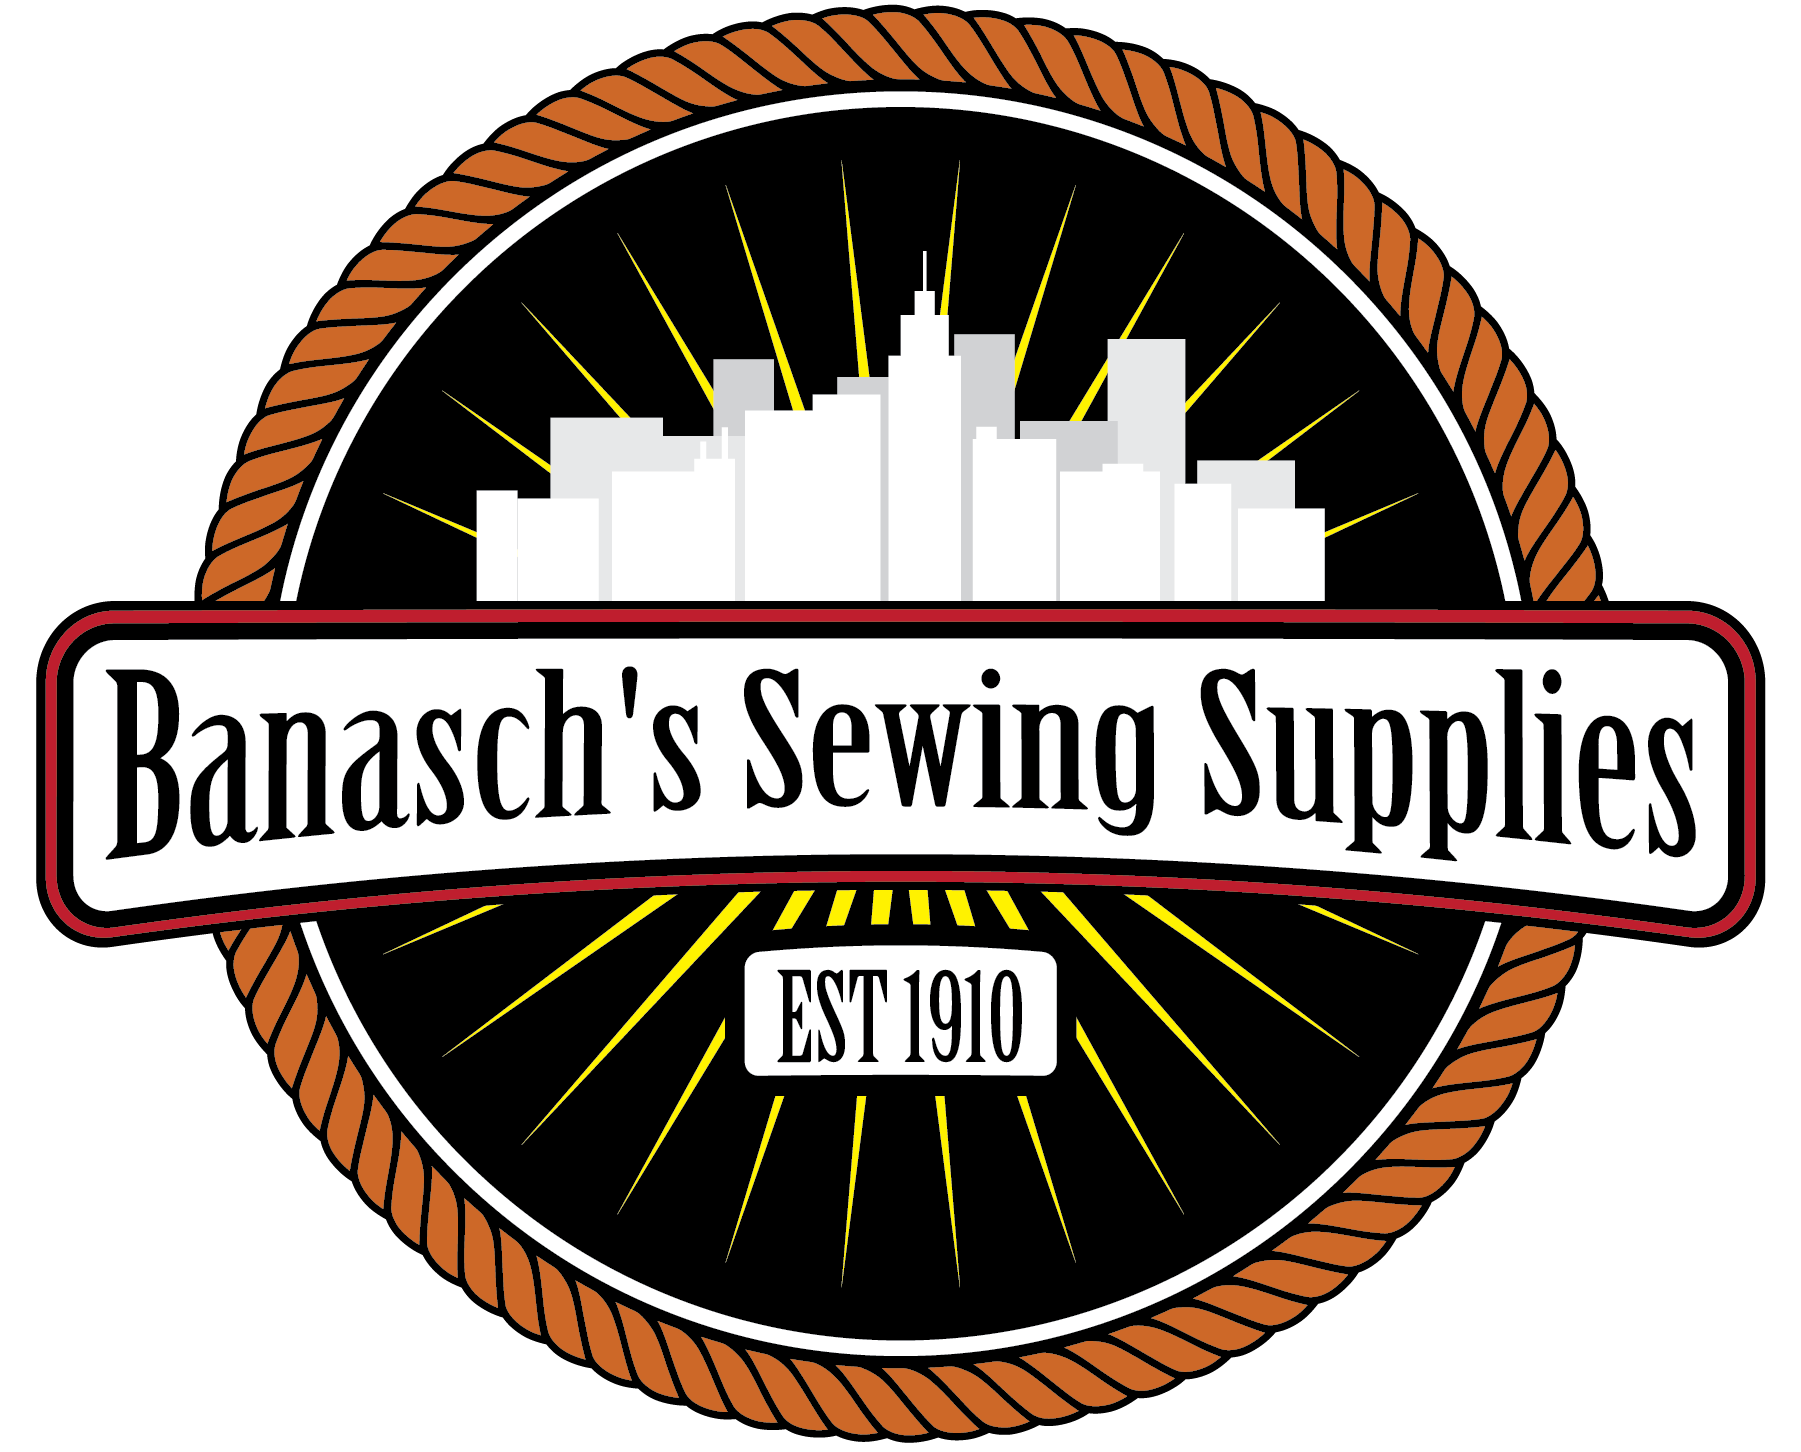 Banasch's Sewing Supplies